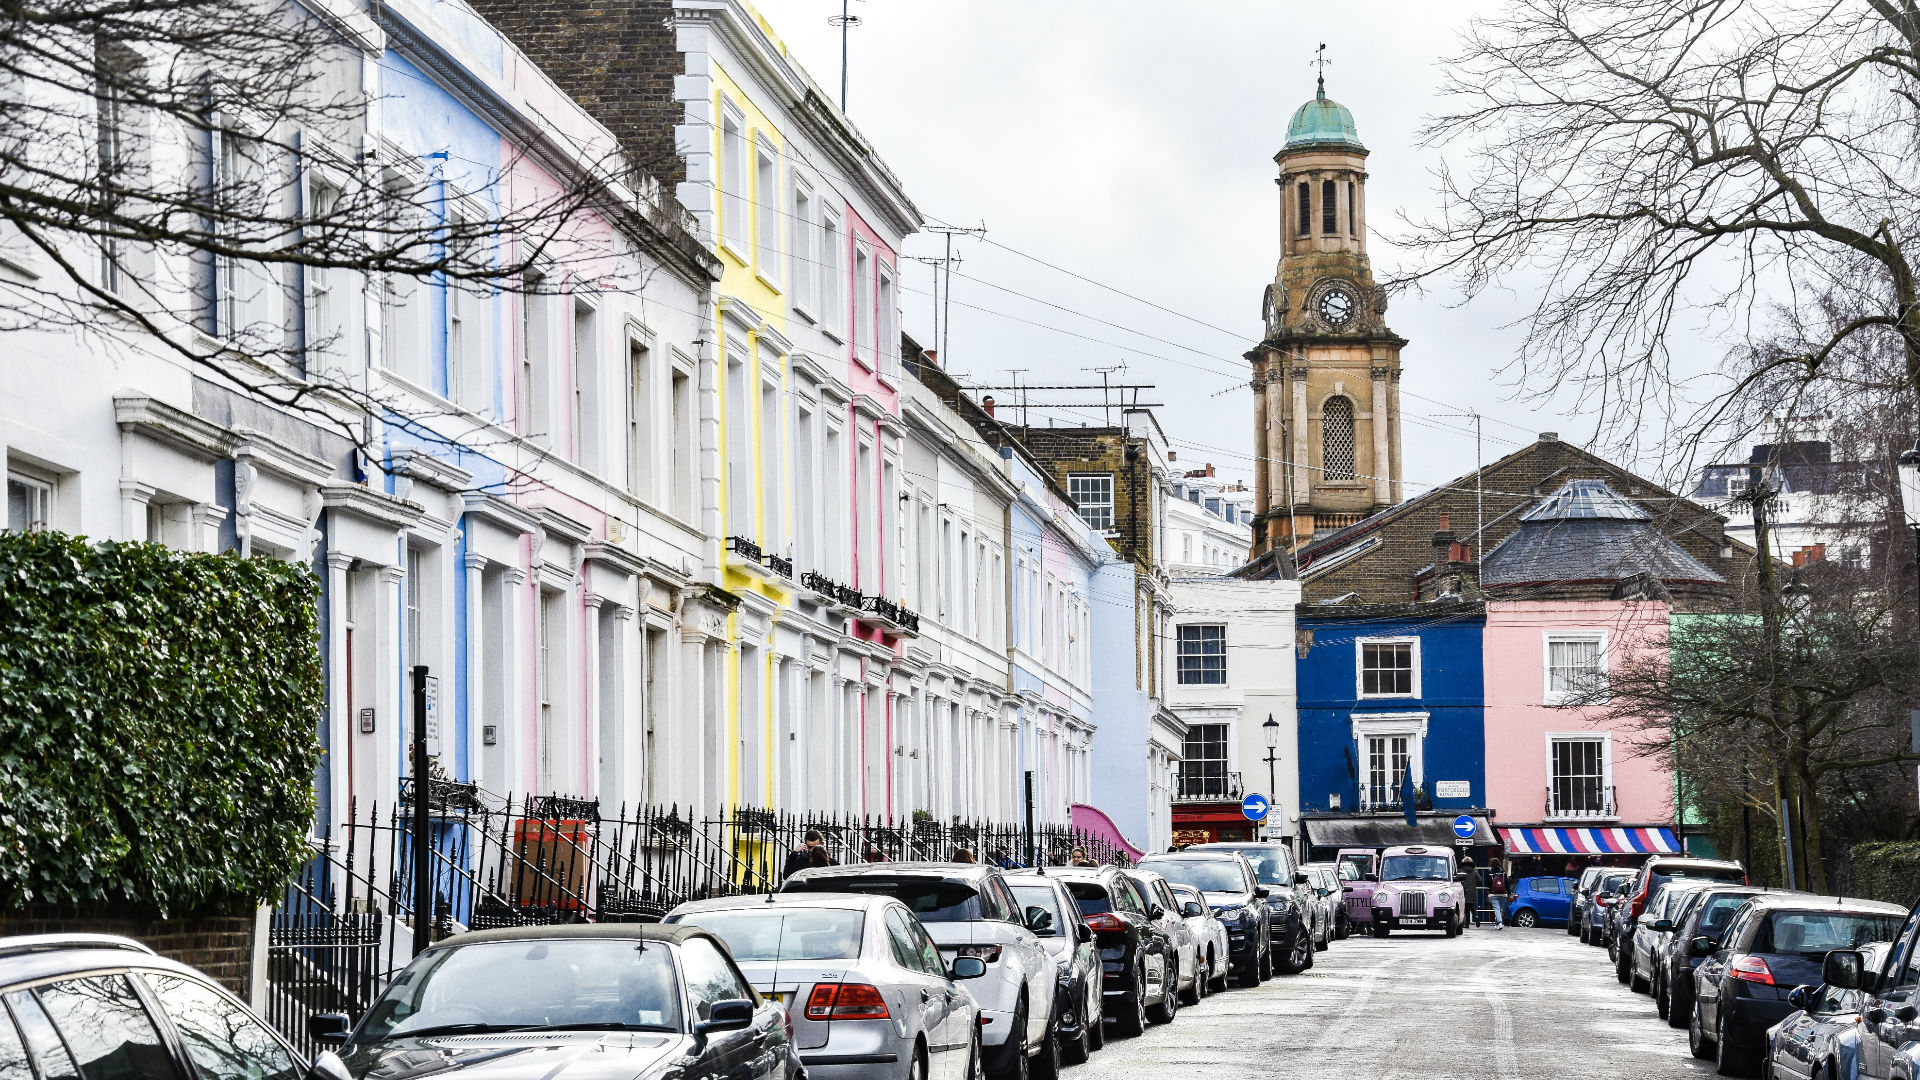 A view along one of Notting Hill's pretty streets with pastel-coloured houses